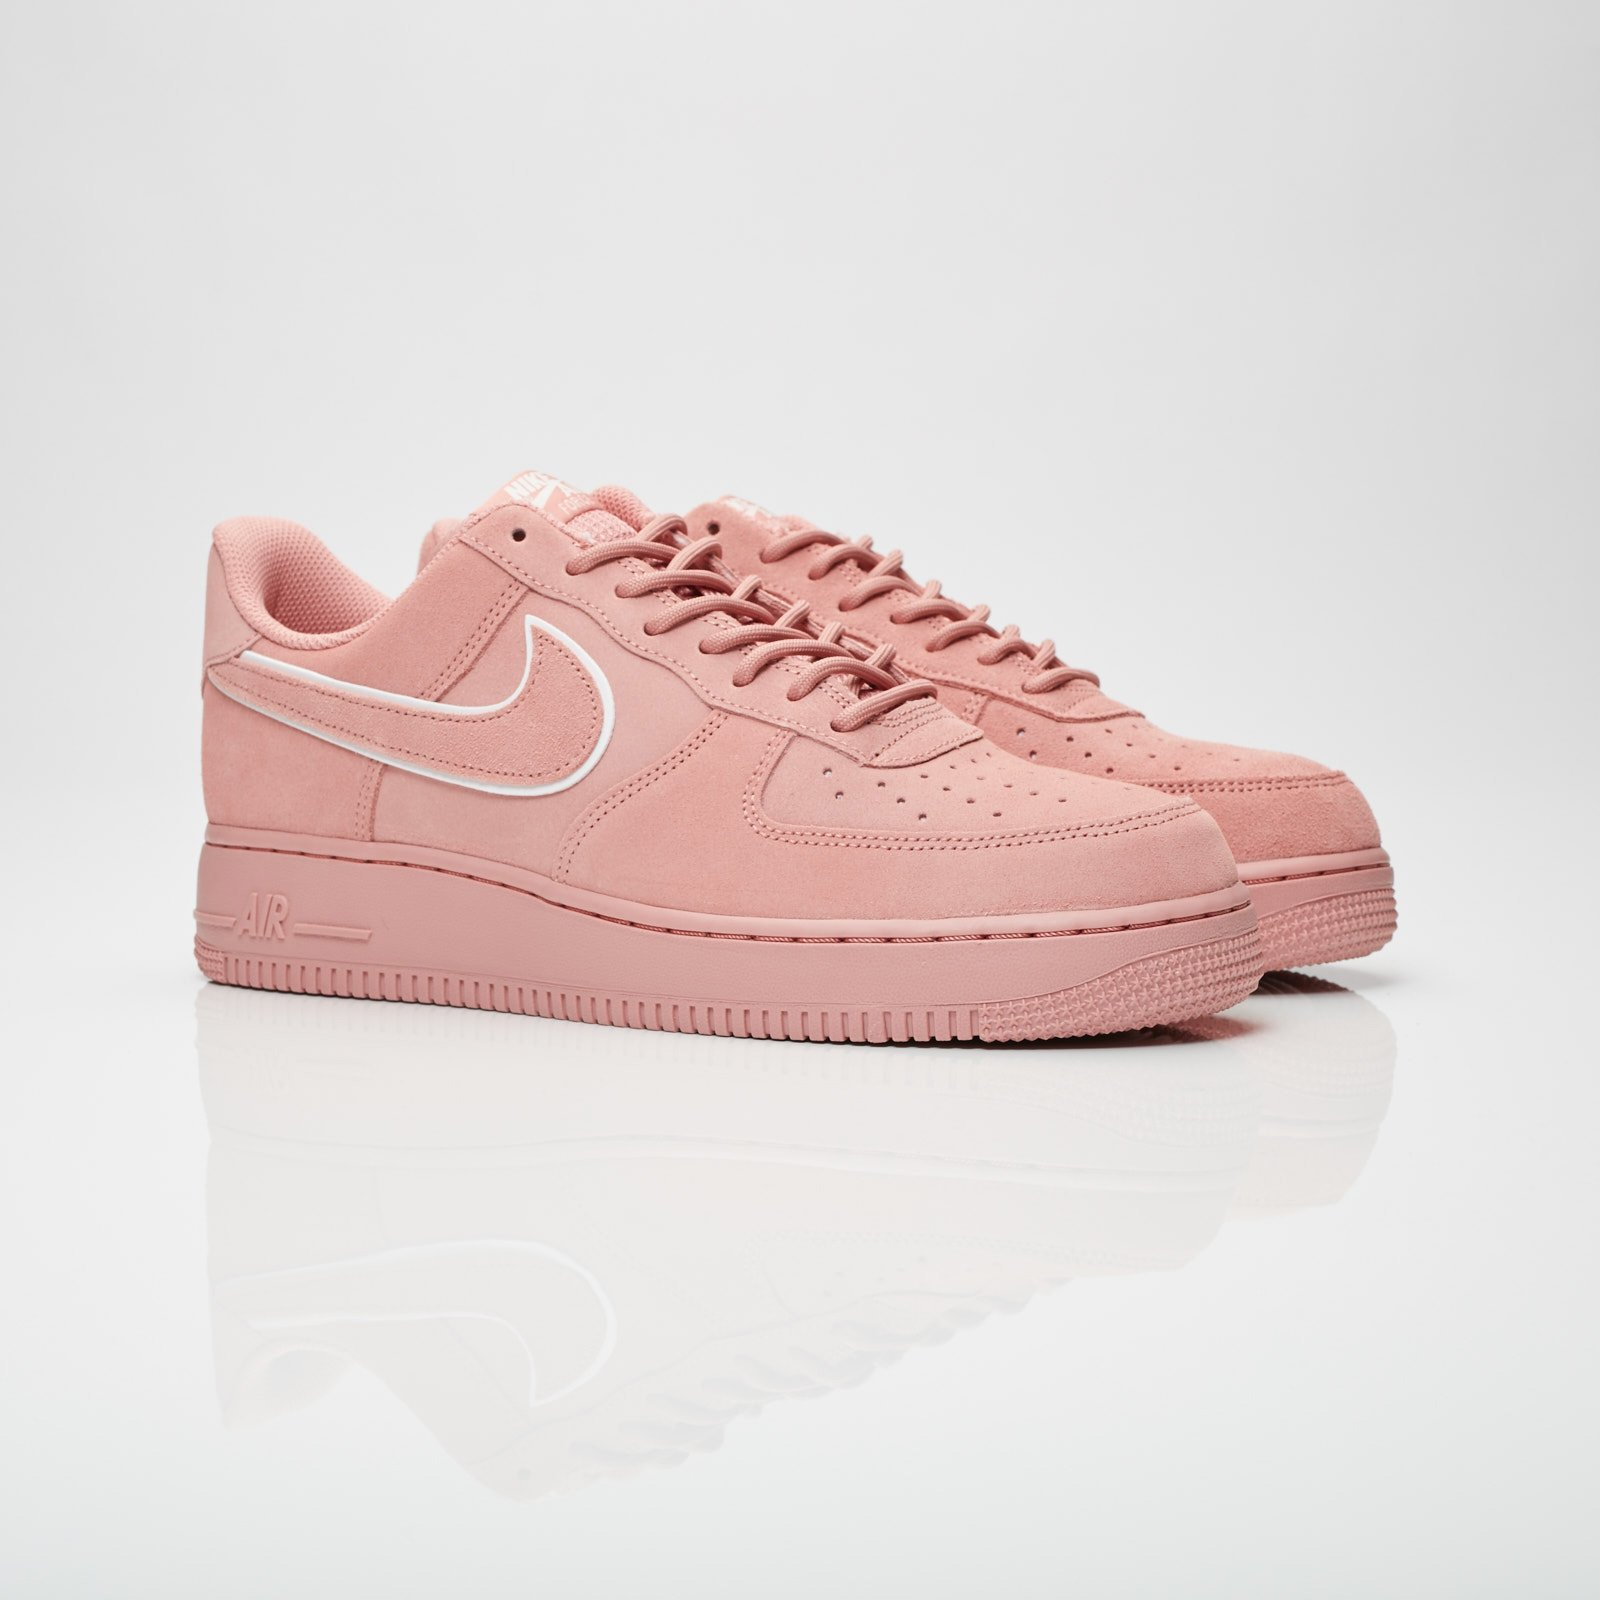 9be3c88d485f Nike Air Force 1 07 lv8 Suede - Aa1117-601 - Sneakersnstuff ...